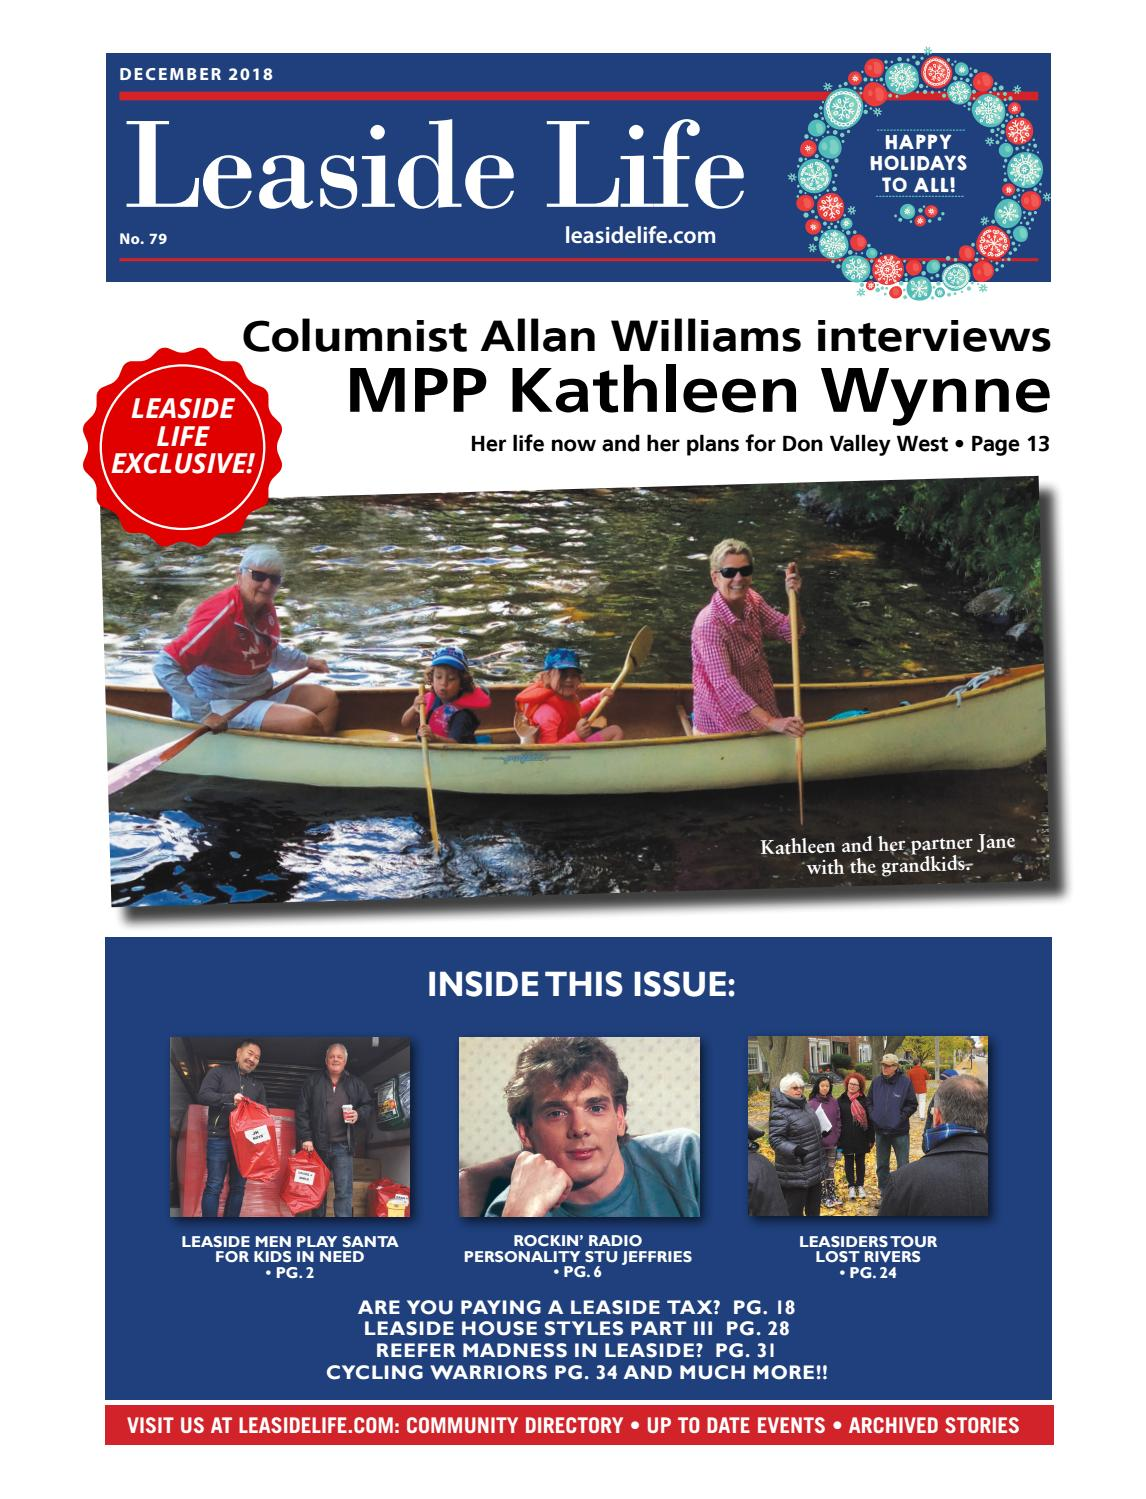 Leaside Life Issue 79 December 2018 by Leaside Life - issuu